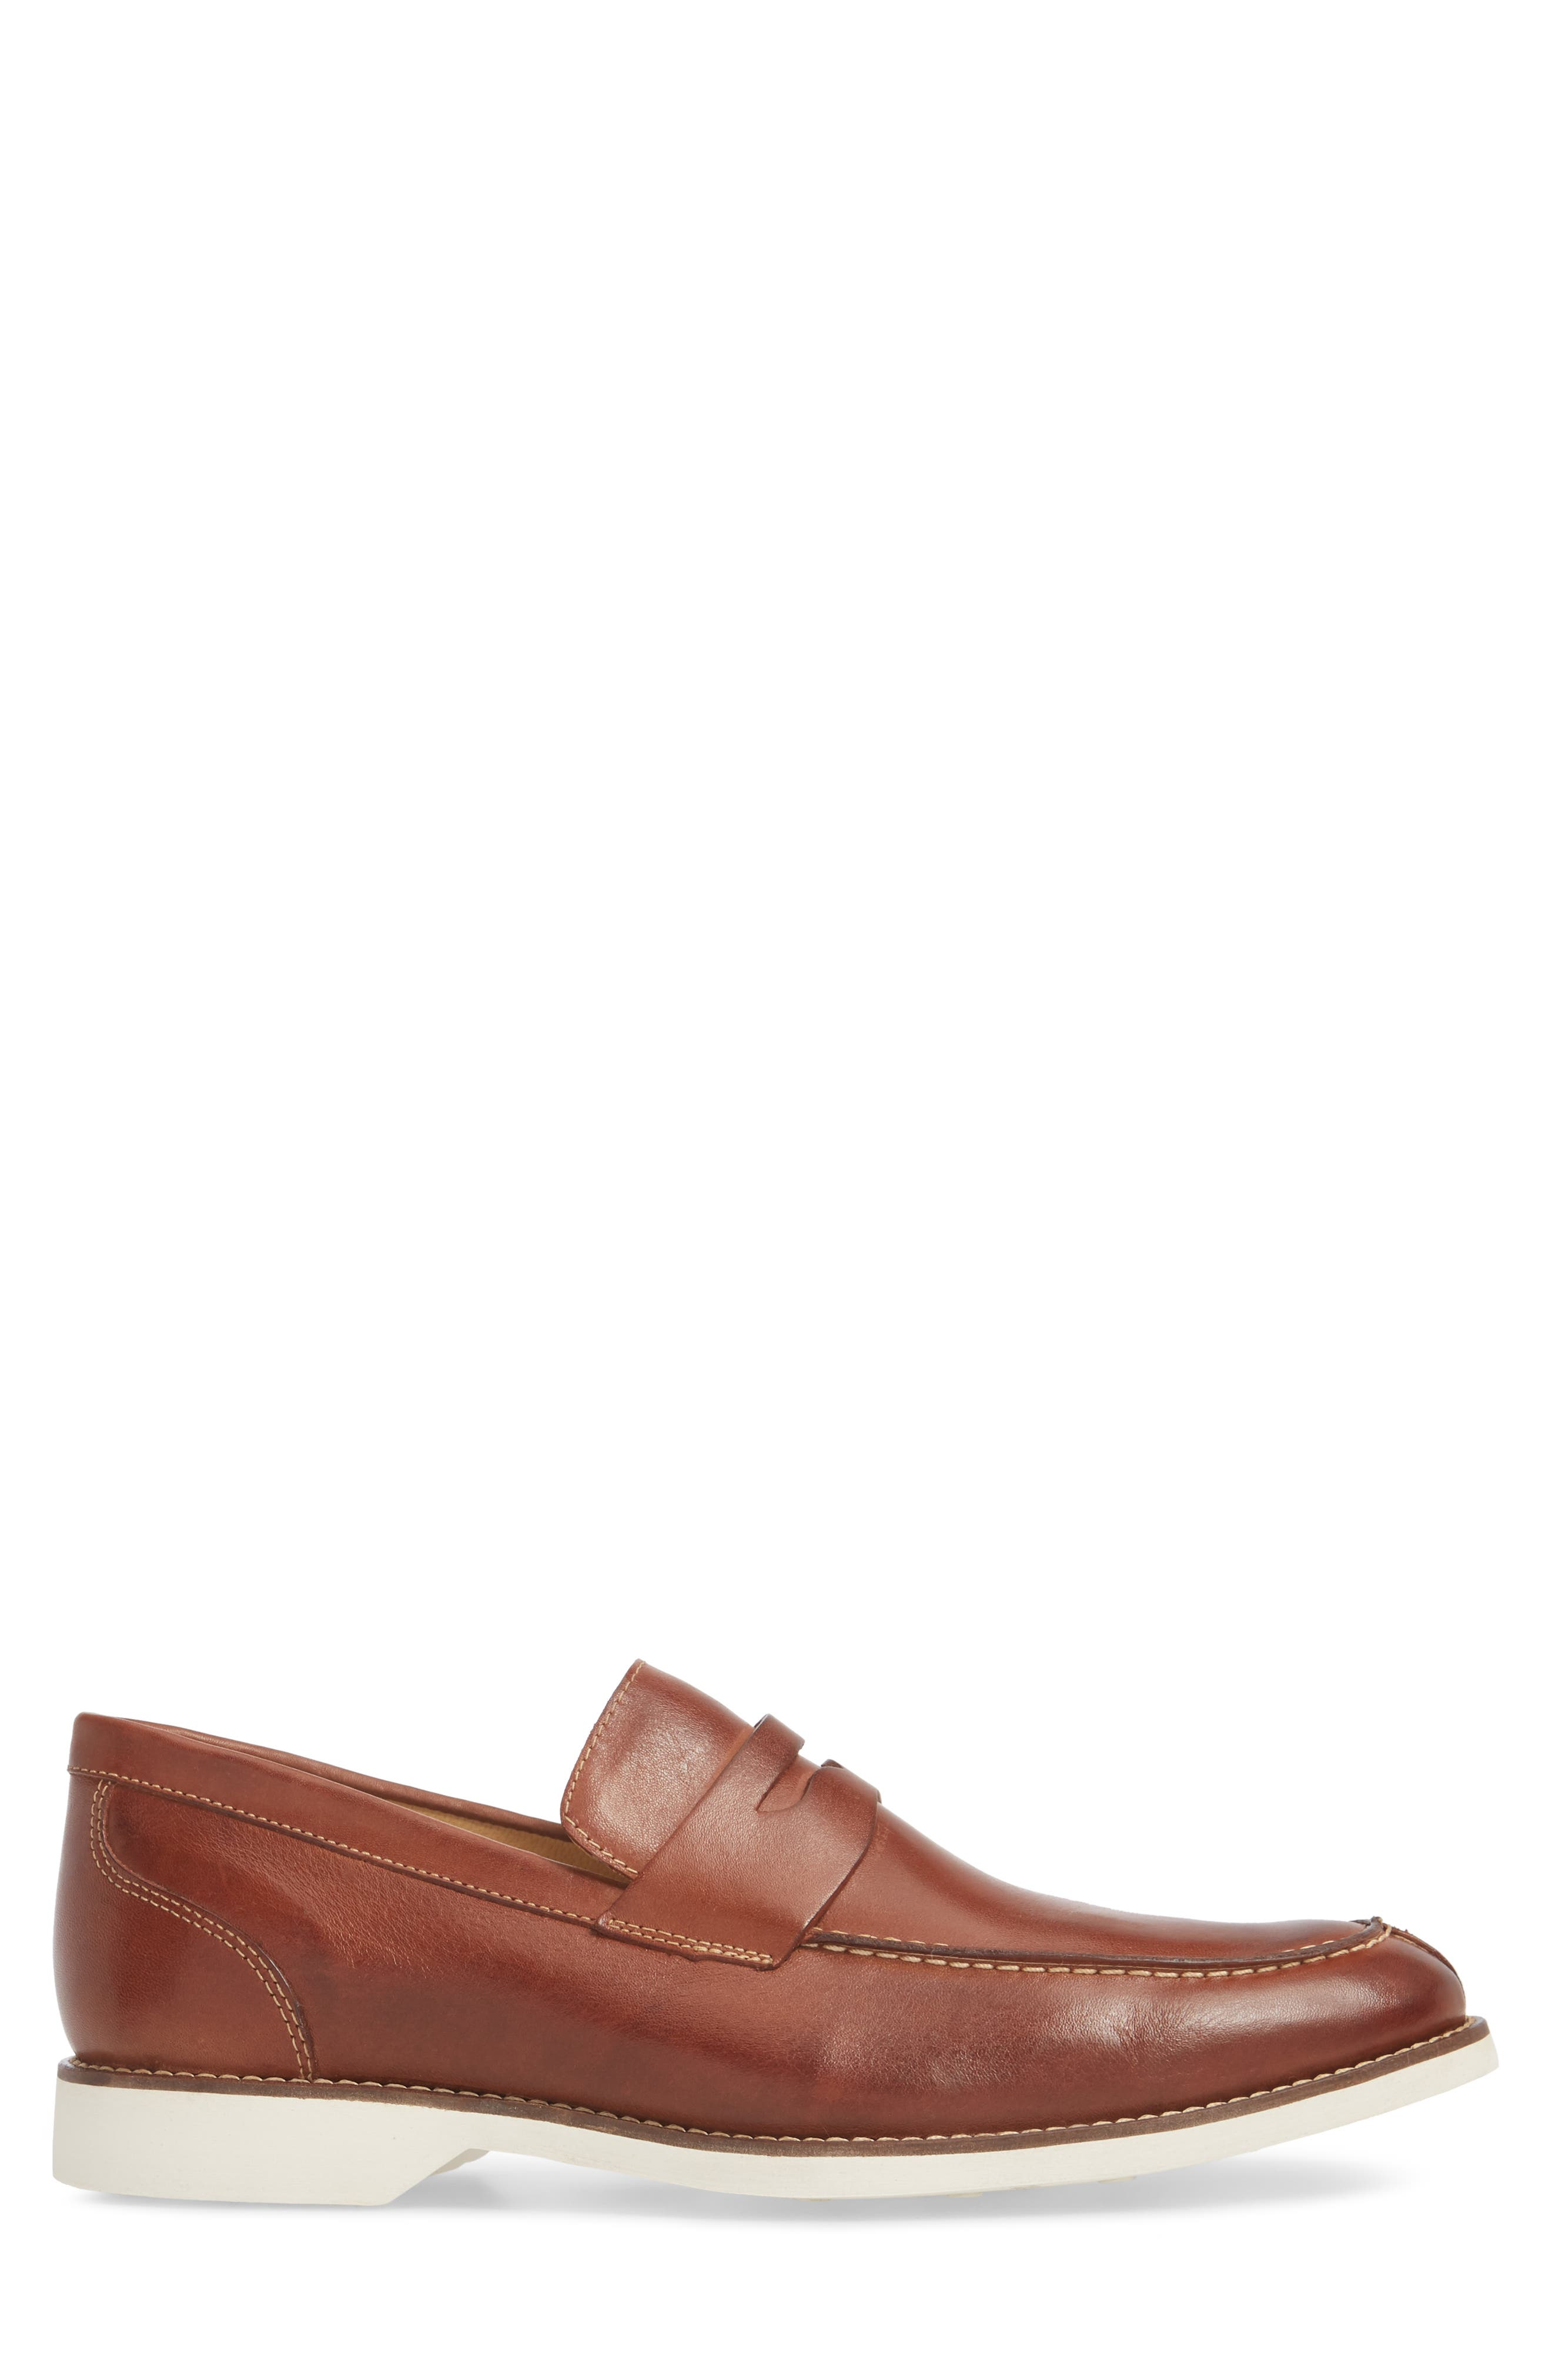 Senador Penny Loafer,                             Alternate thumbnail 3, color,                             Touch Havana Leather